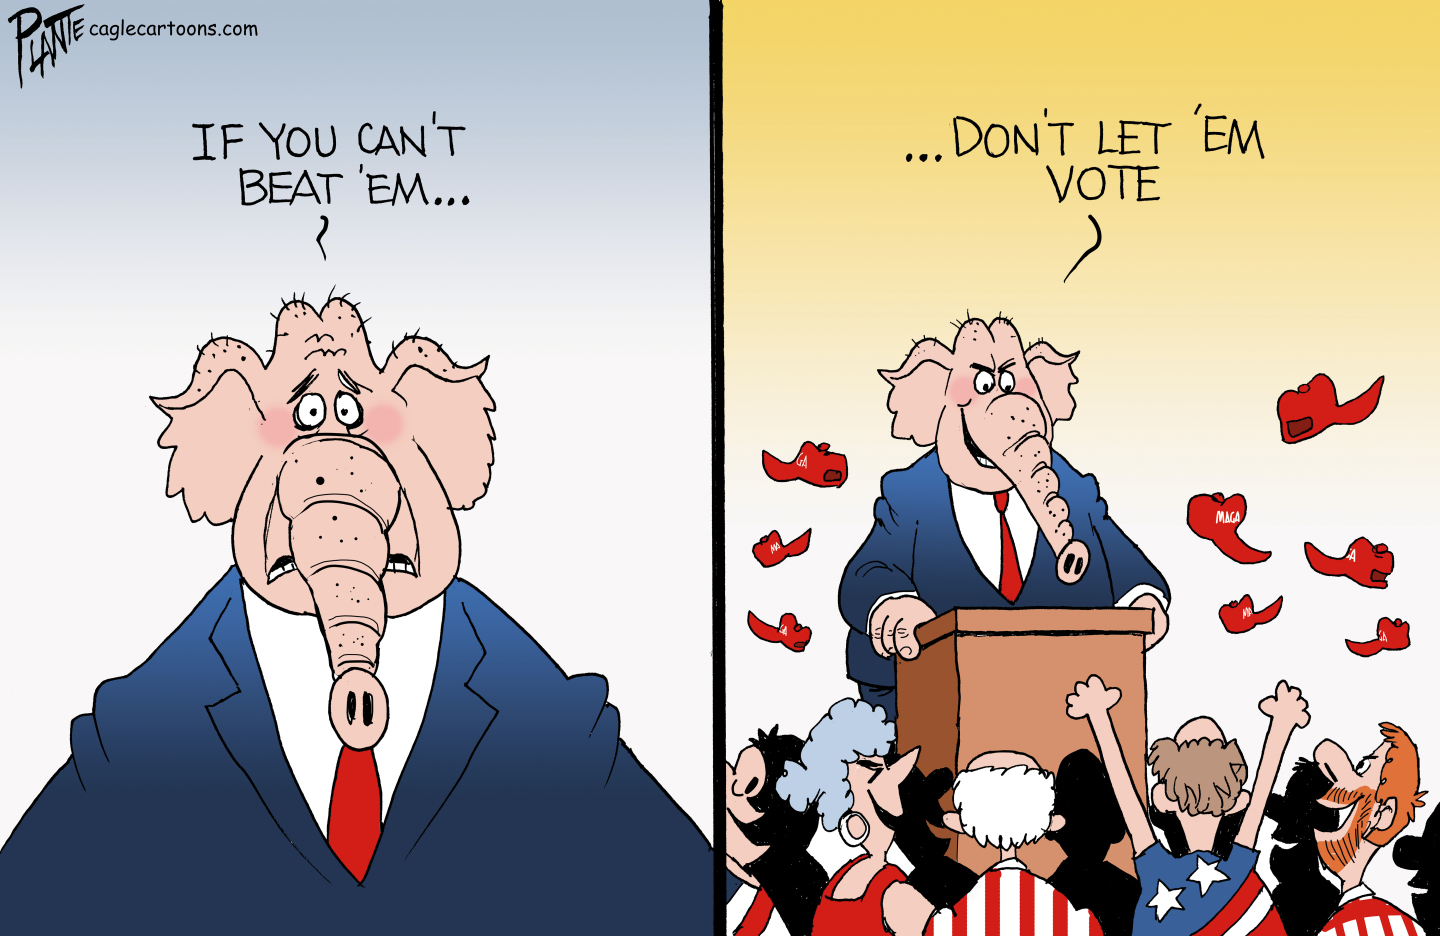 Republicans resort to voter suppression to cling to power.